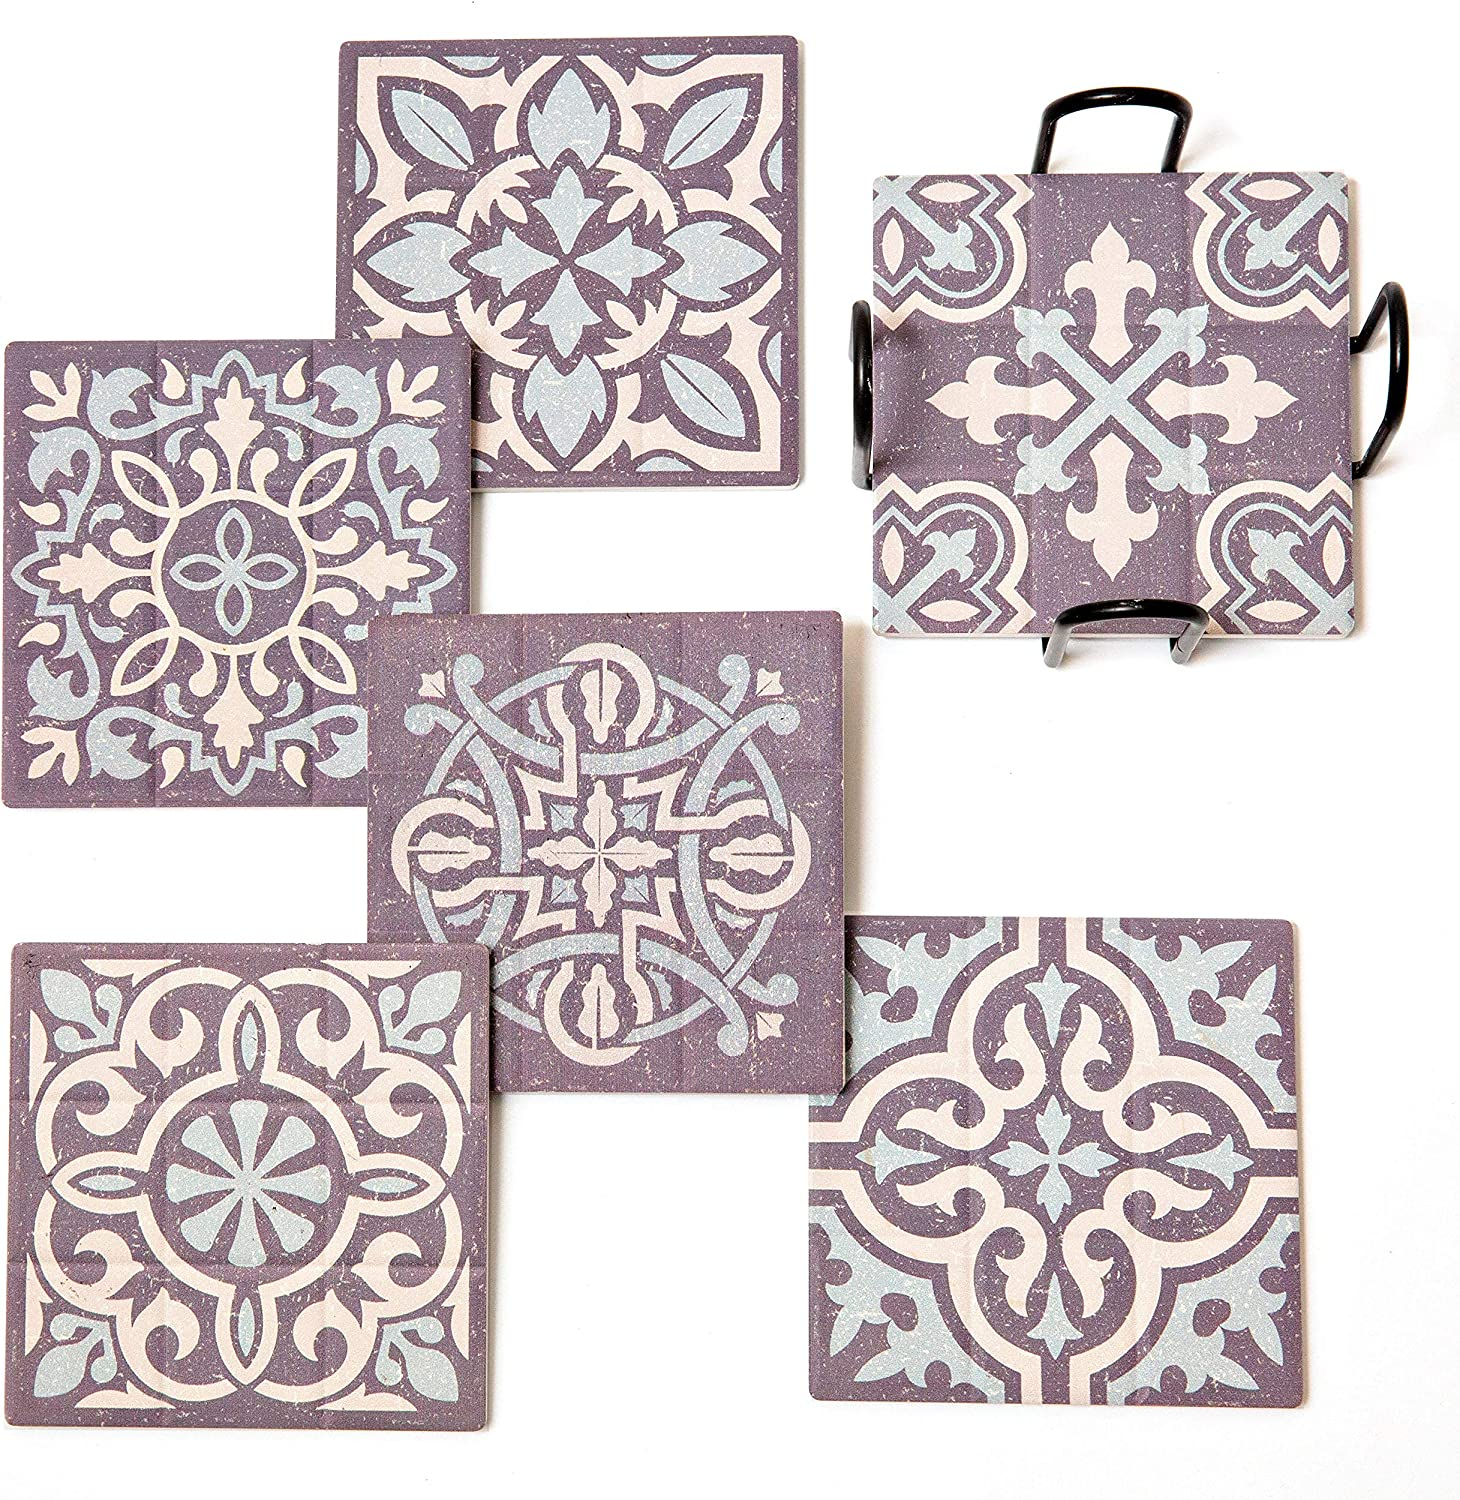 ELIZA COLE Ceramic Stone Coasters with Holder - Set of 6, Wildwood Collection, Cool Coasters for Drinks Absorbent, Pretty Coasters, Farmhouse Coasters, Coasters for Wooden or Glass Table Absorbant